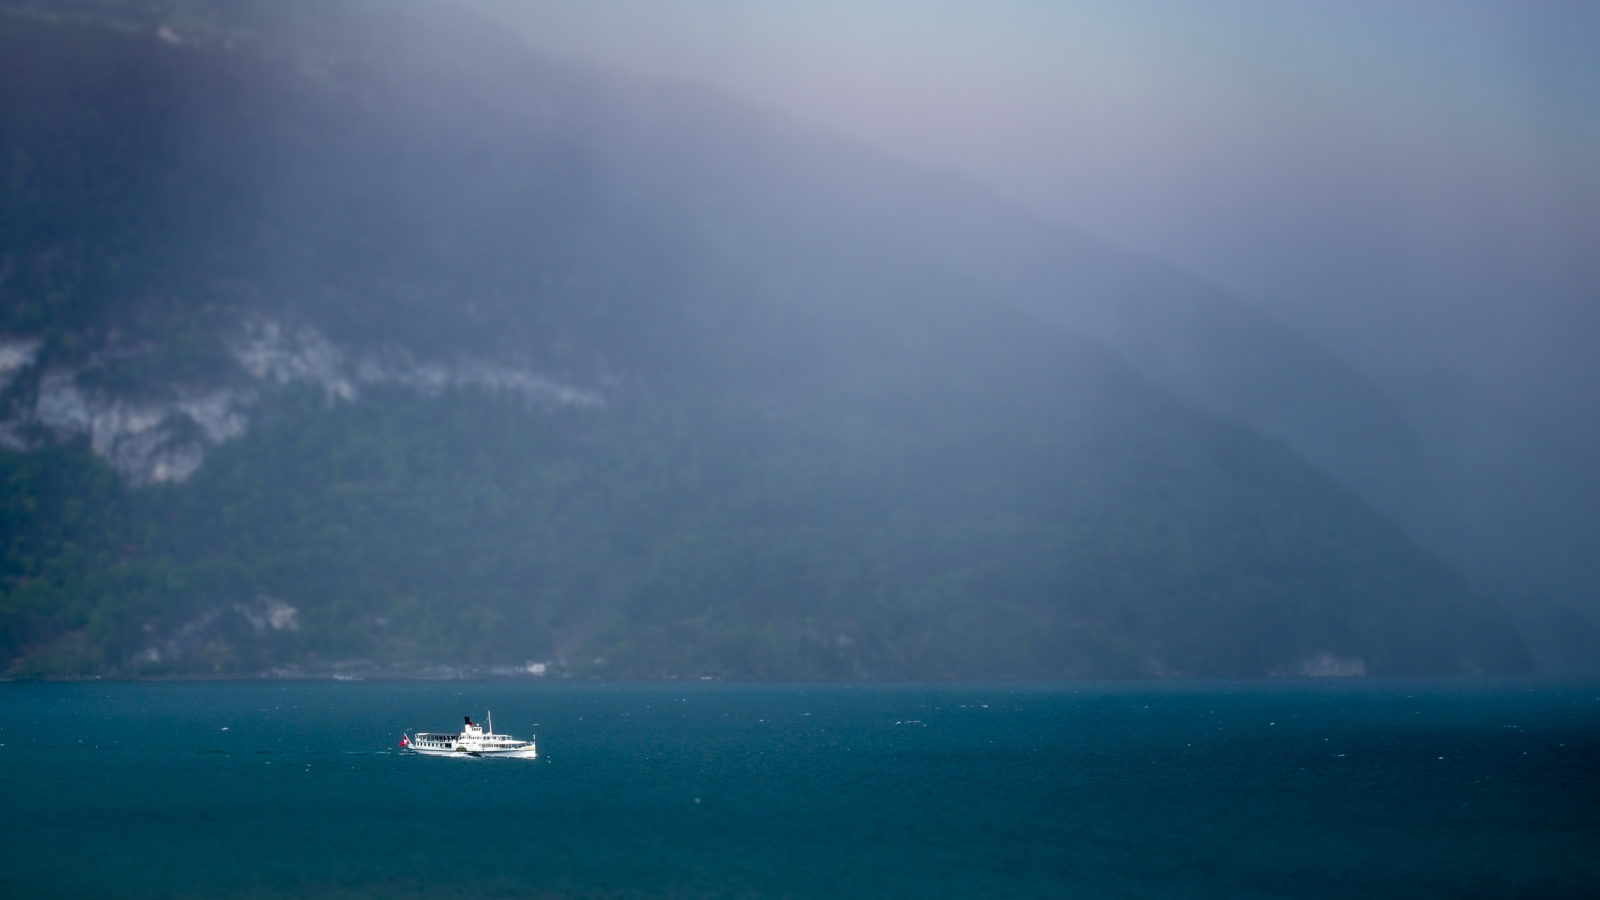 Blümlisalp paddle steamer in windy conditions on Lake Thun